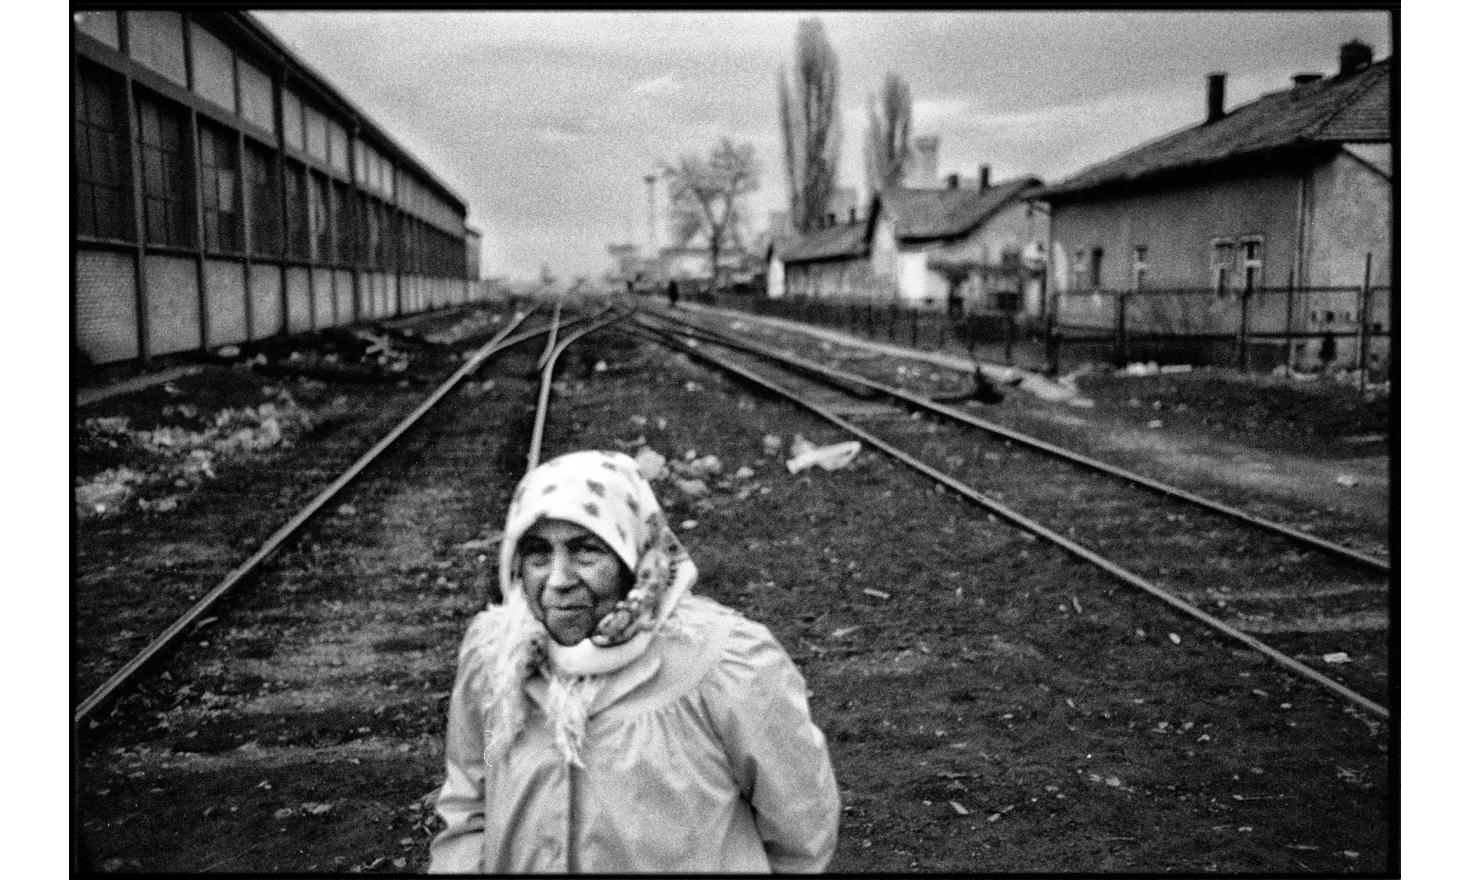 Ashkali in the district of Fushë Kosovë (Kosovo Polje in serb), where the Ashkalis live. They are an albanian ethnic minority. They are muslim and speak albanian as their first language. Kosovo, February 2008.